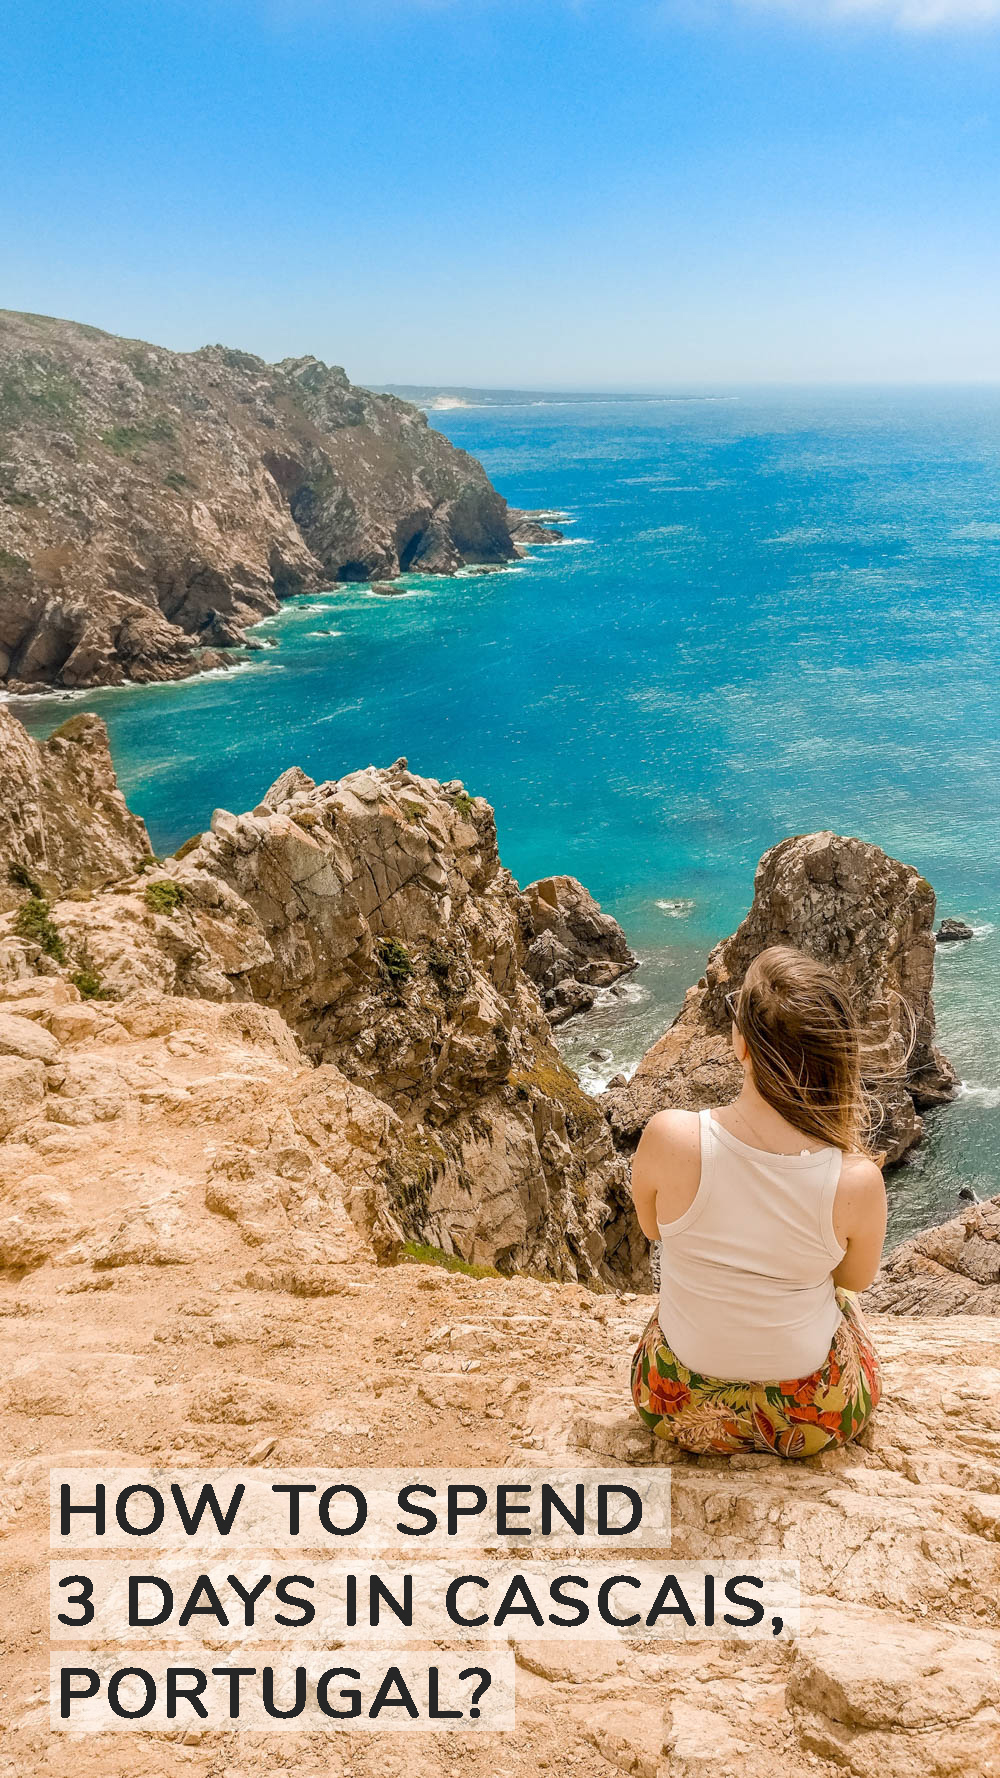 Is a day trip to Cascais enough? - How to spend 3 days in Cascais, Portugal? | Aliz's Wonderland